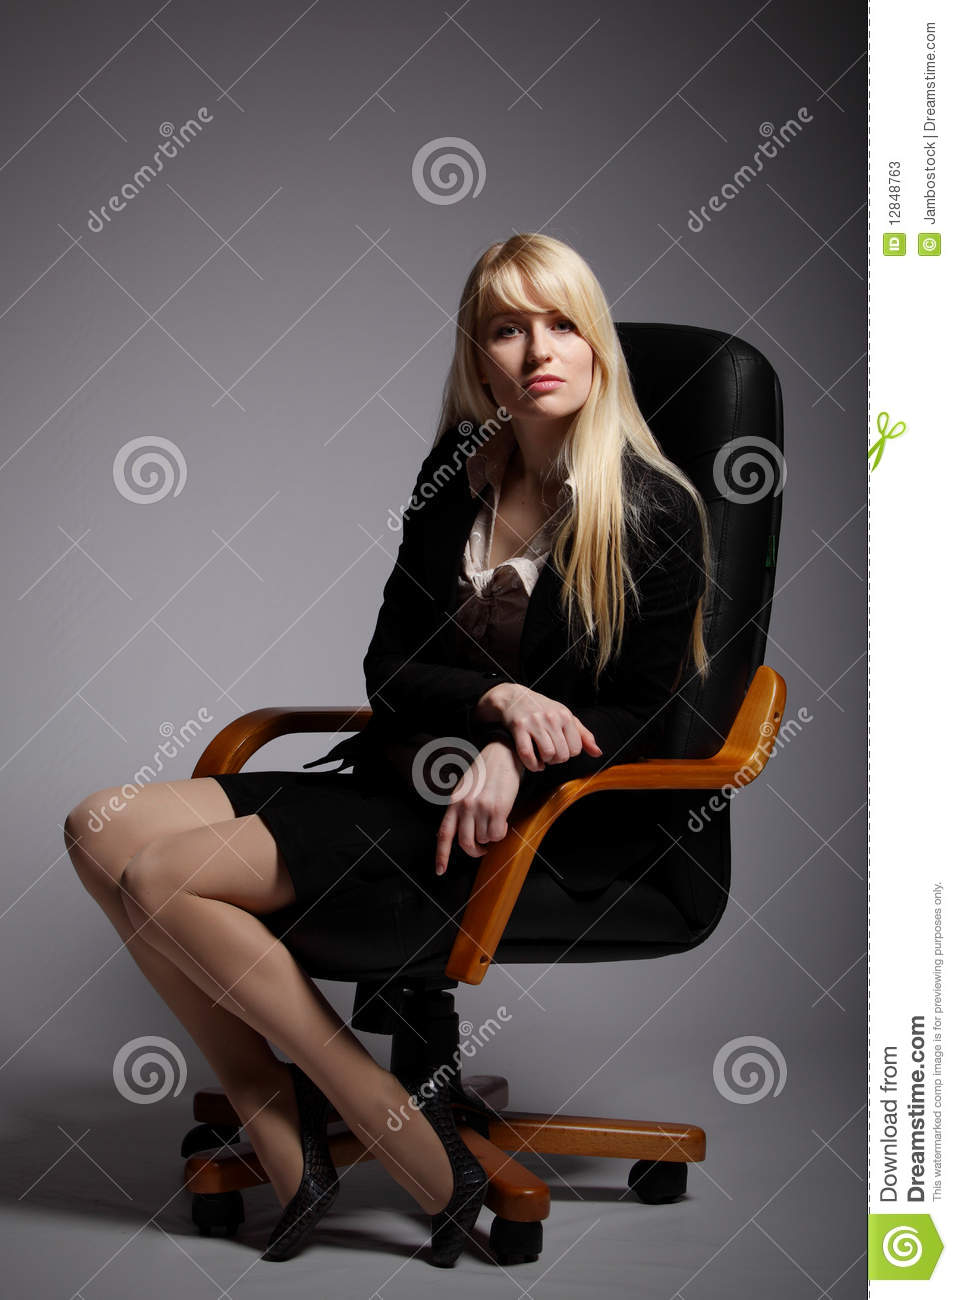 The Young Sexy Business Woman Stock Photos Image 12848763